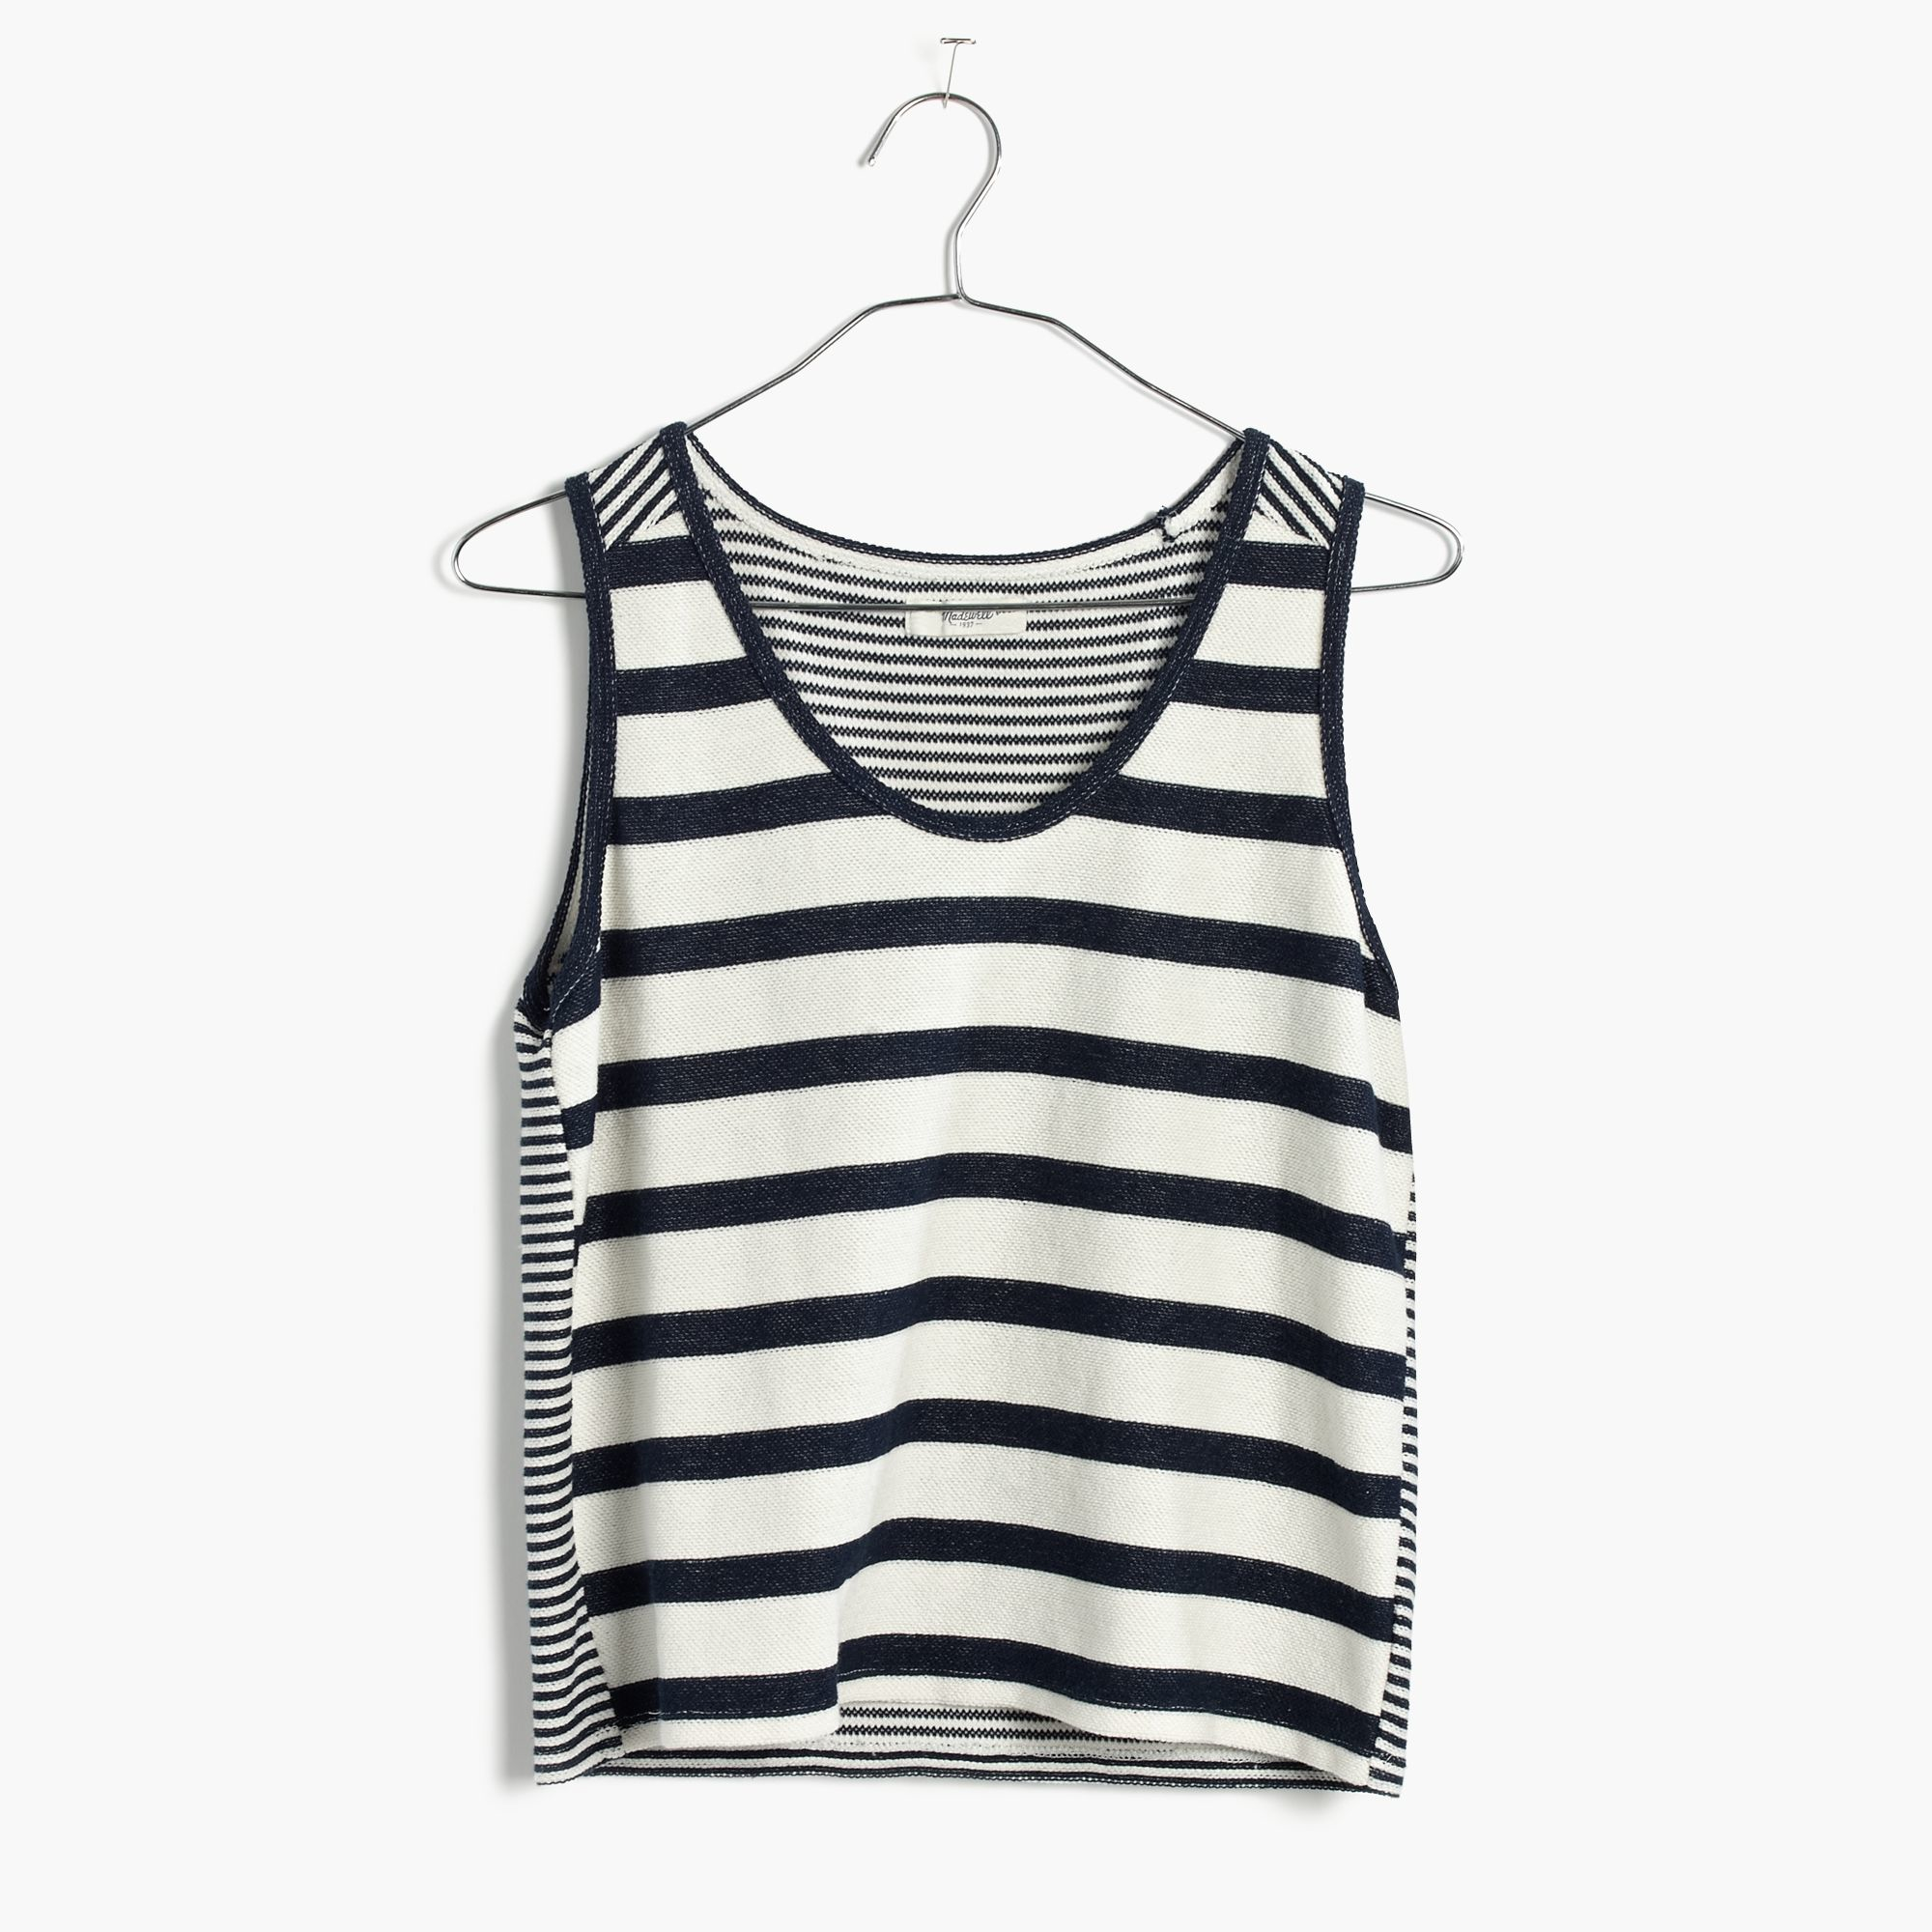 Lyst madewell coastland tank top in stripe in blue for Coastland mall jewelry stores